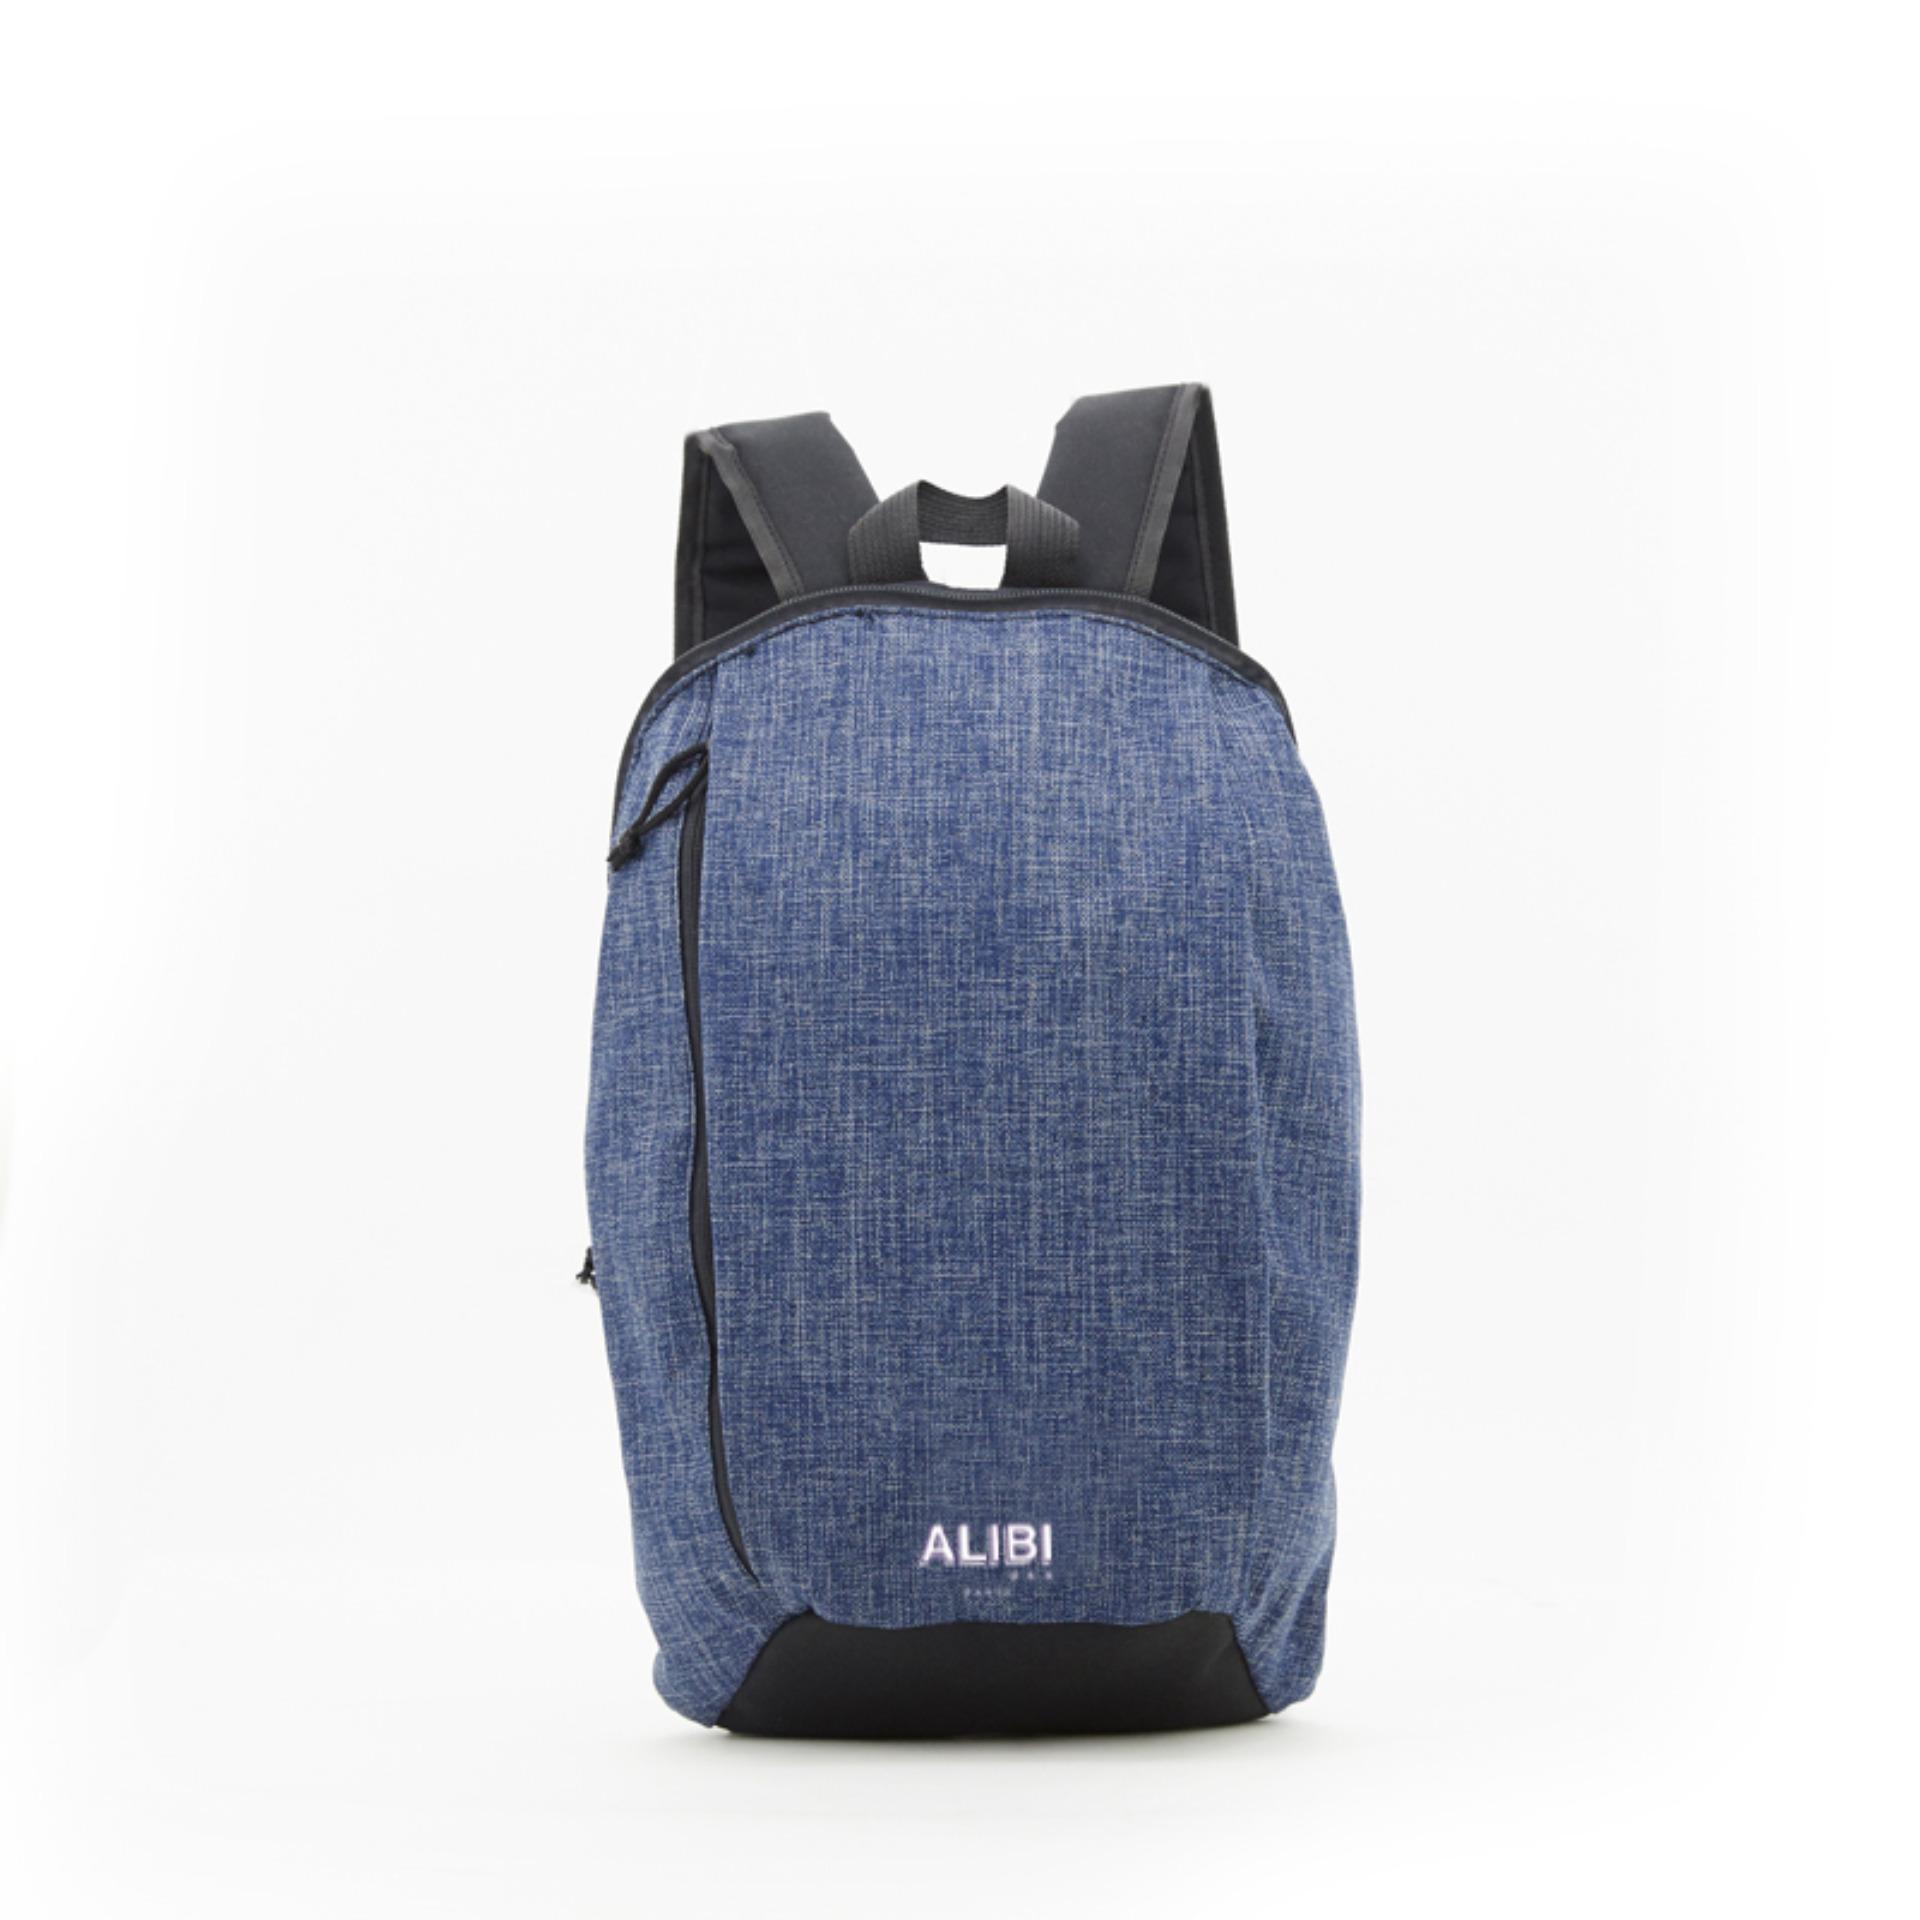 Beli Alibi Paris Alston Bag Seken